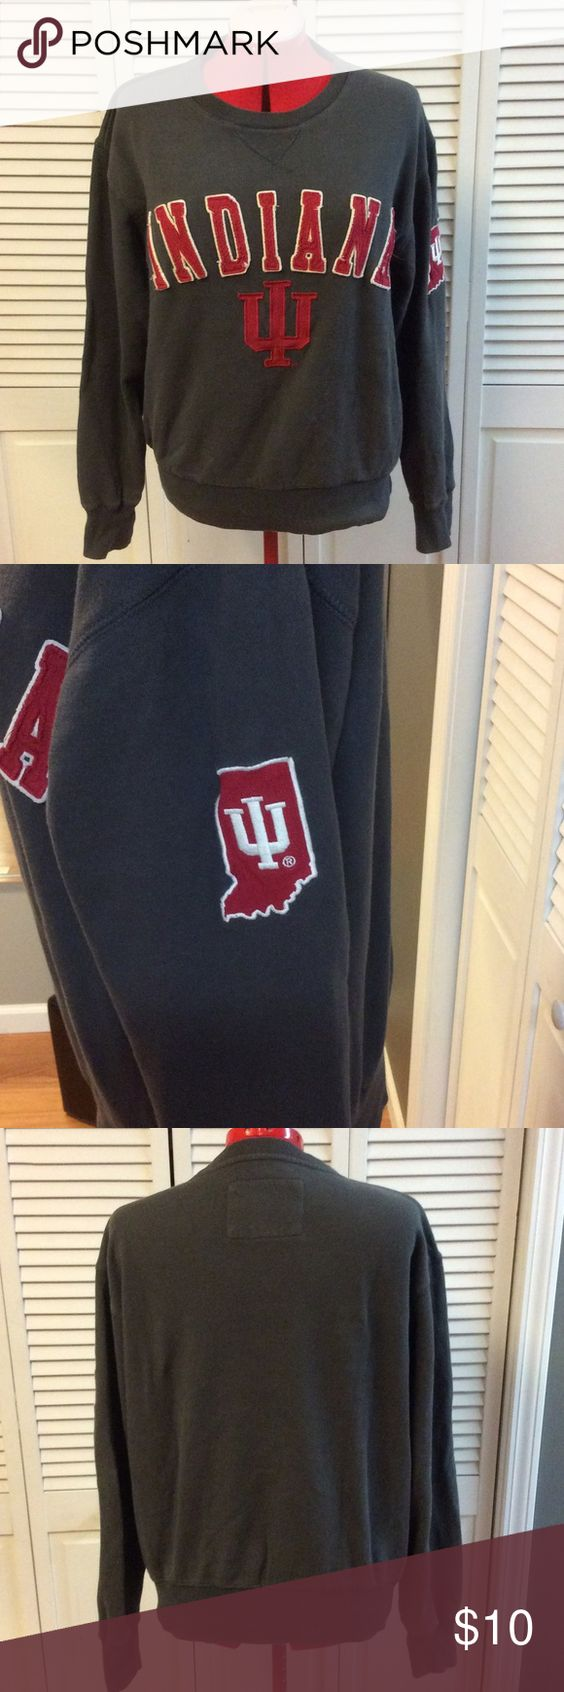 Indiana University IU Crew Neck Sweatshirt Small Vintage look crew neck sweatshirt - extremely soft, gray color with sewn on letters - not screen print. One small hole - can easily be stitched - but adds to vintage look 😉 Campus Heritage Tops Sweatshirts & Hoodies